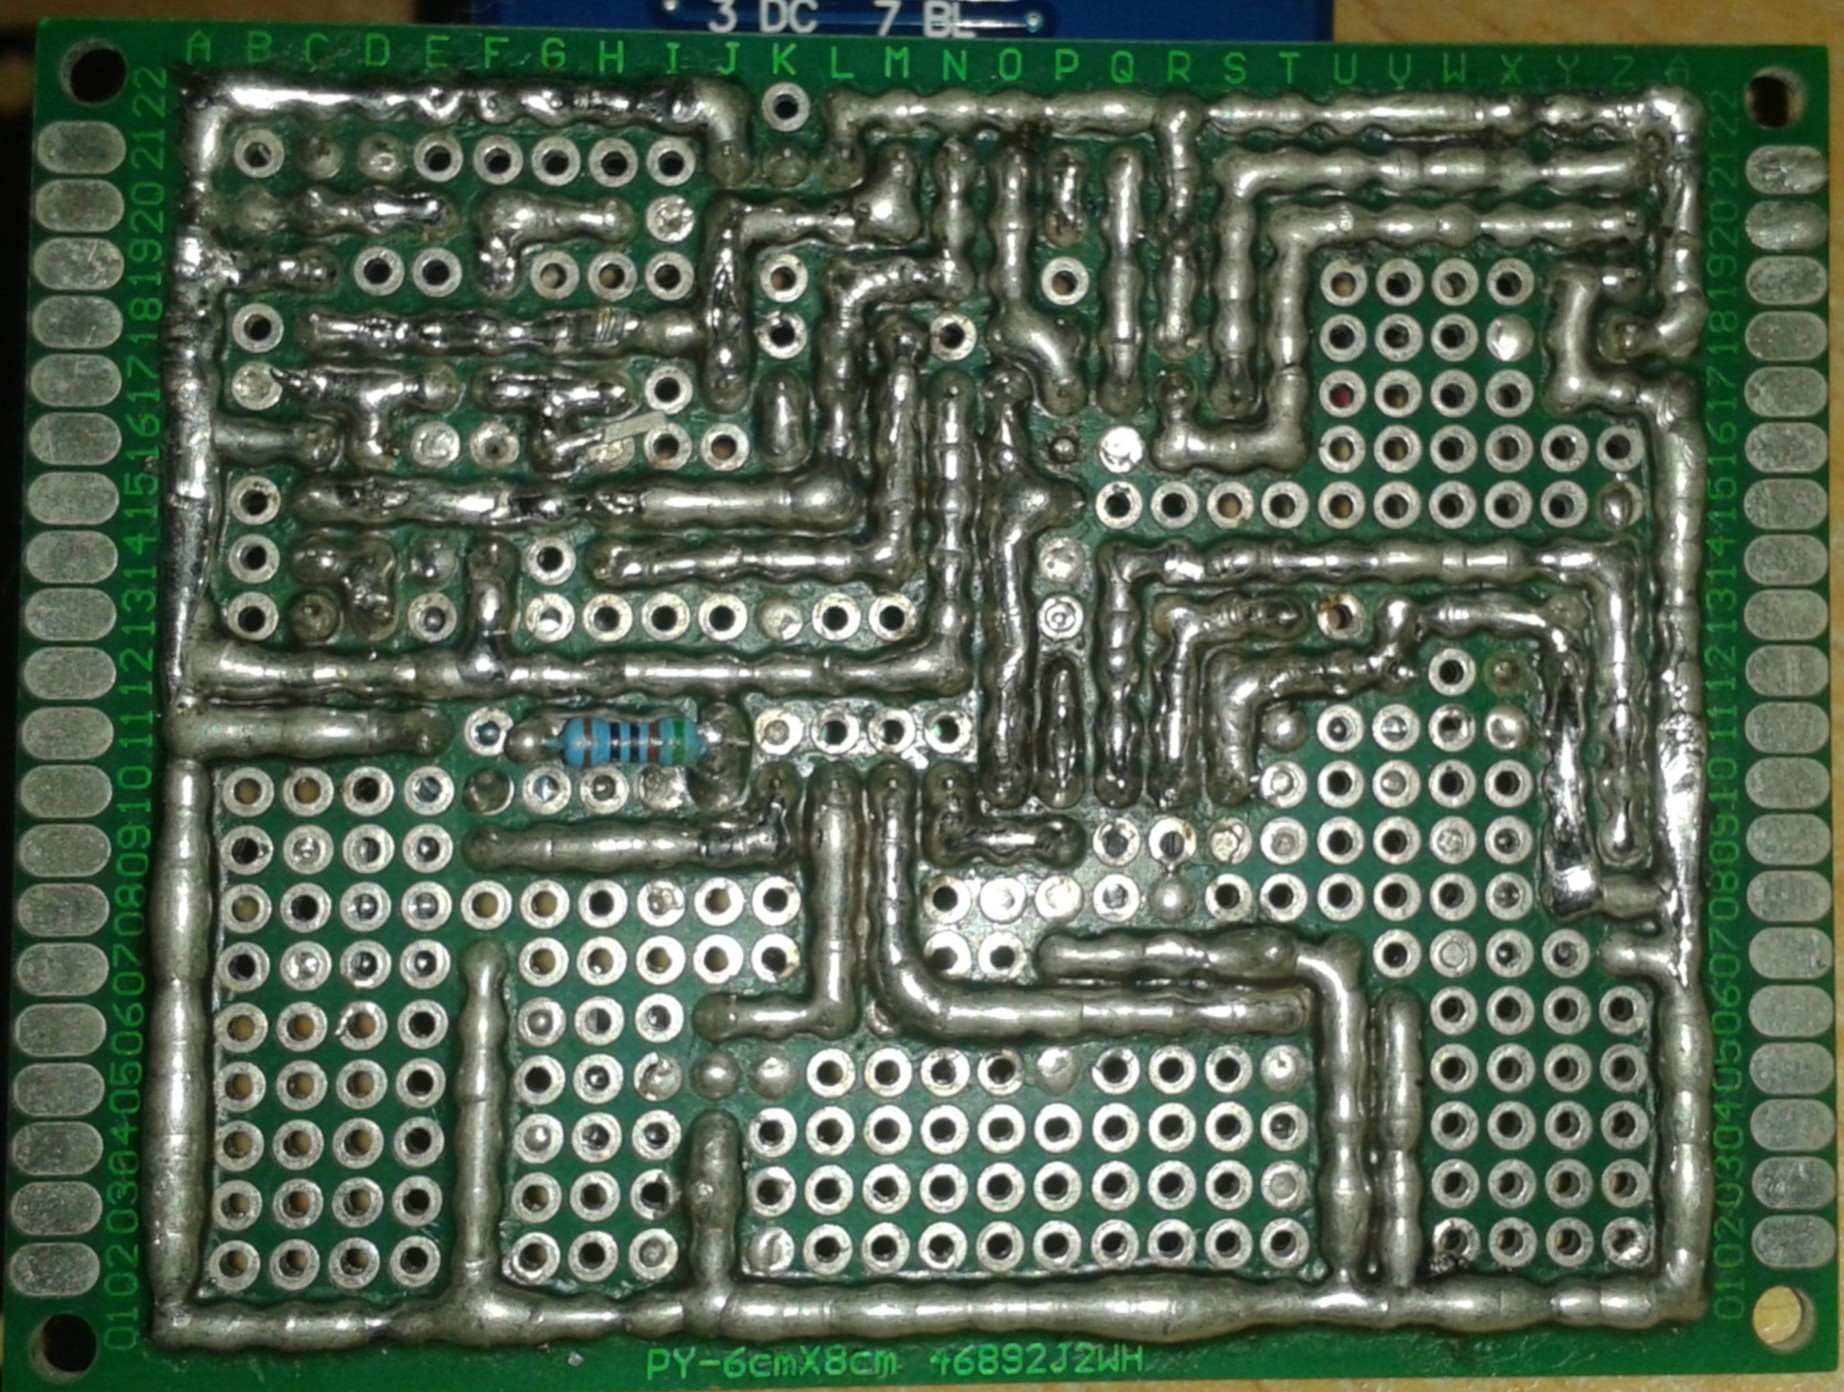 Photo of the back of the portable game console, showing the soldering trace on perfboard